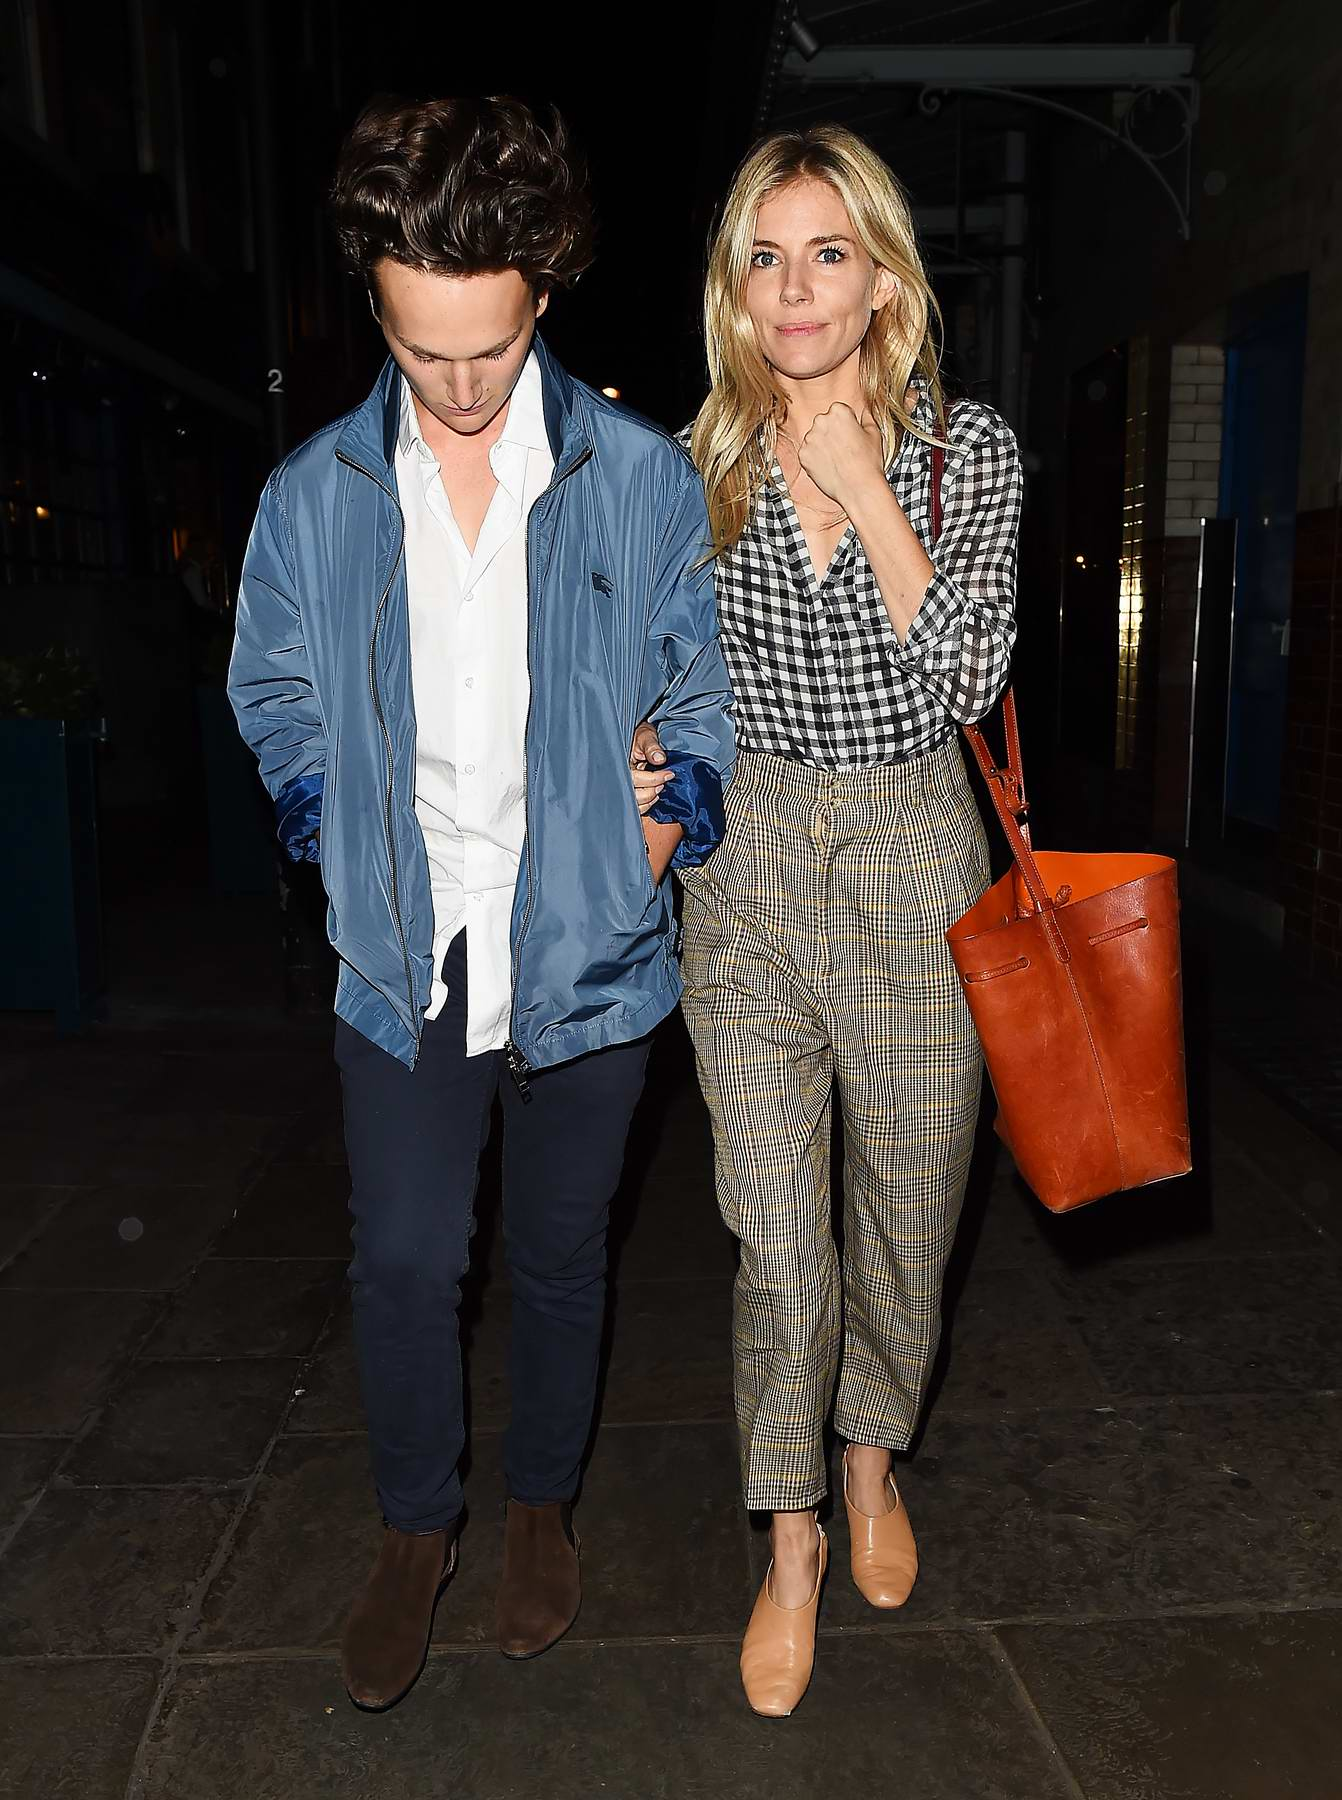 Sienna Miller leaves J Sheekey Restaurant with male friend in Covent Garden, London